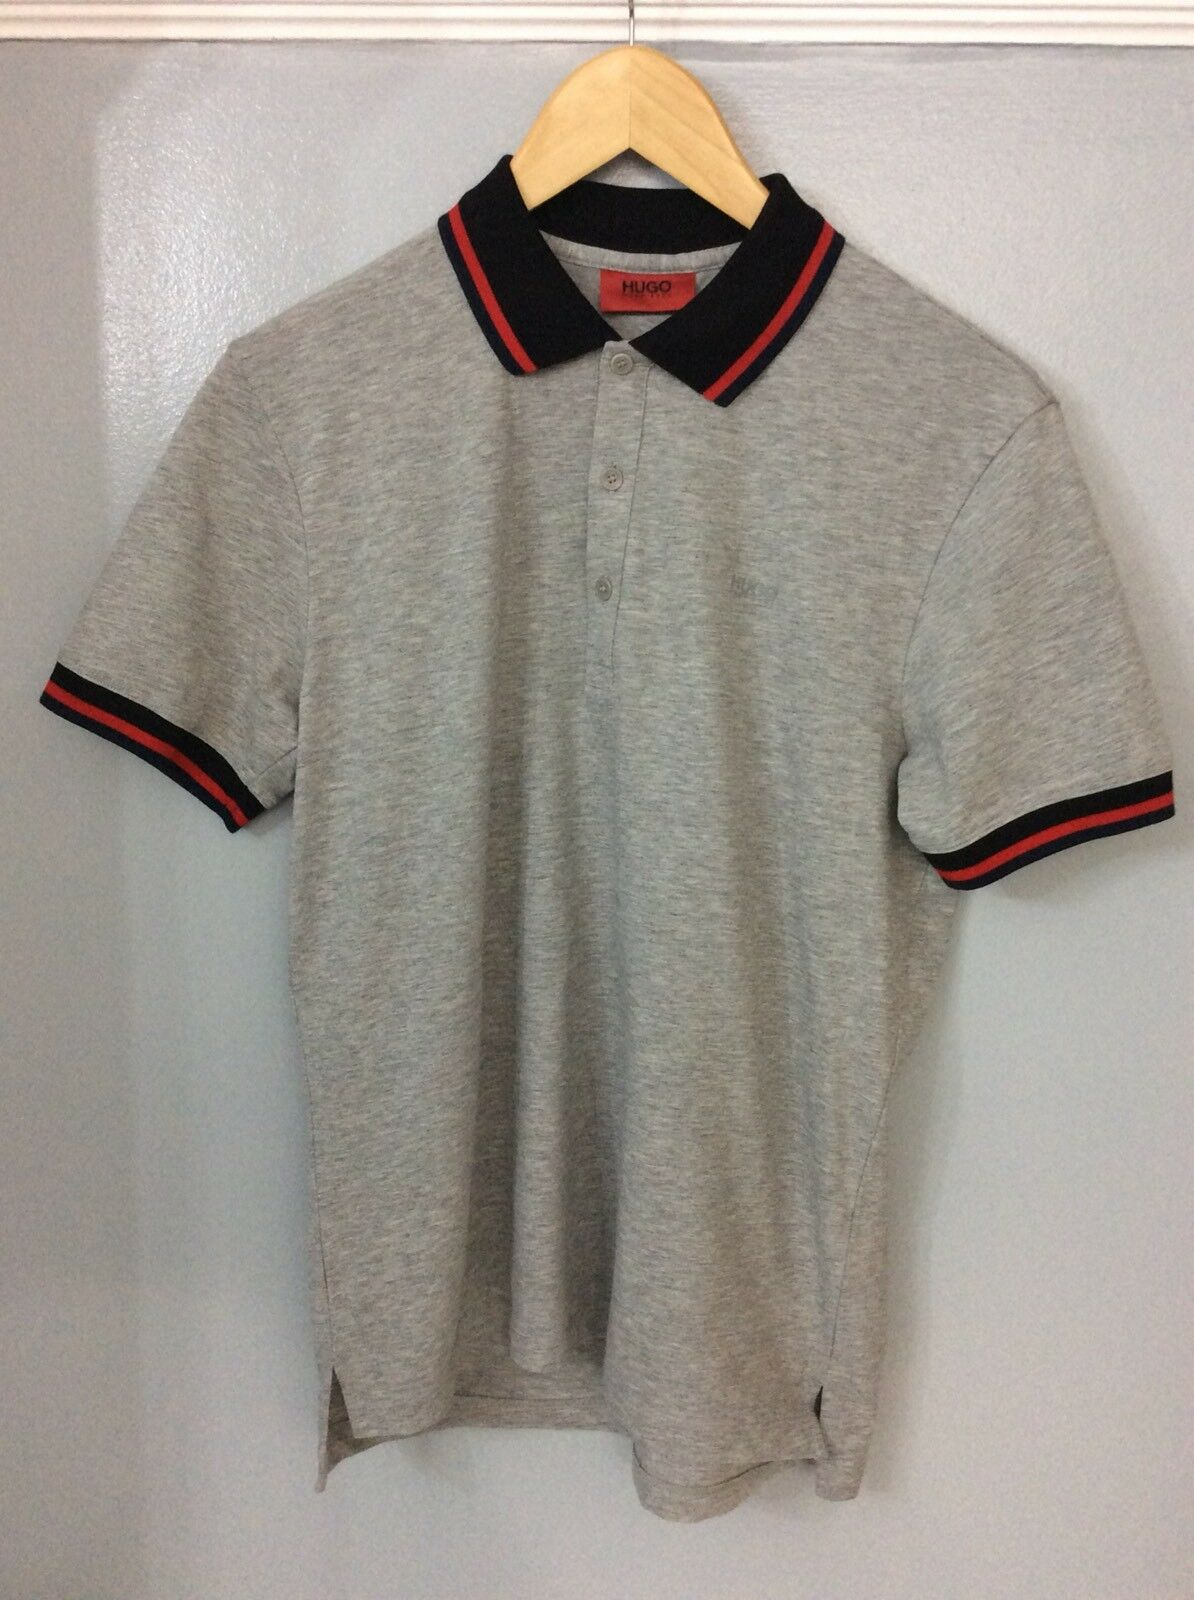 Hugo Boss Grey Short  Sleeve Polo Top Size S Small Immaculate Condition P2P 20""